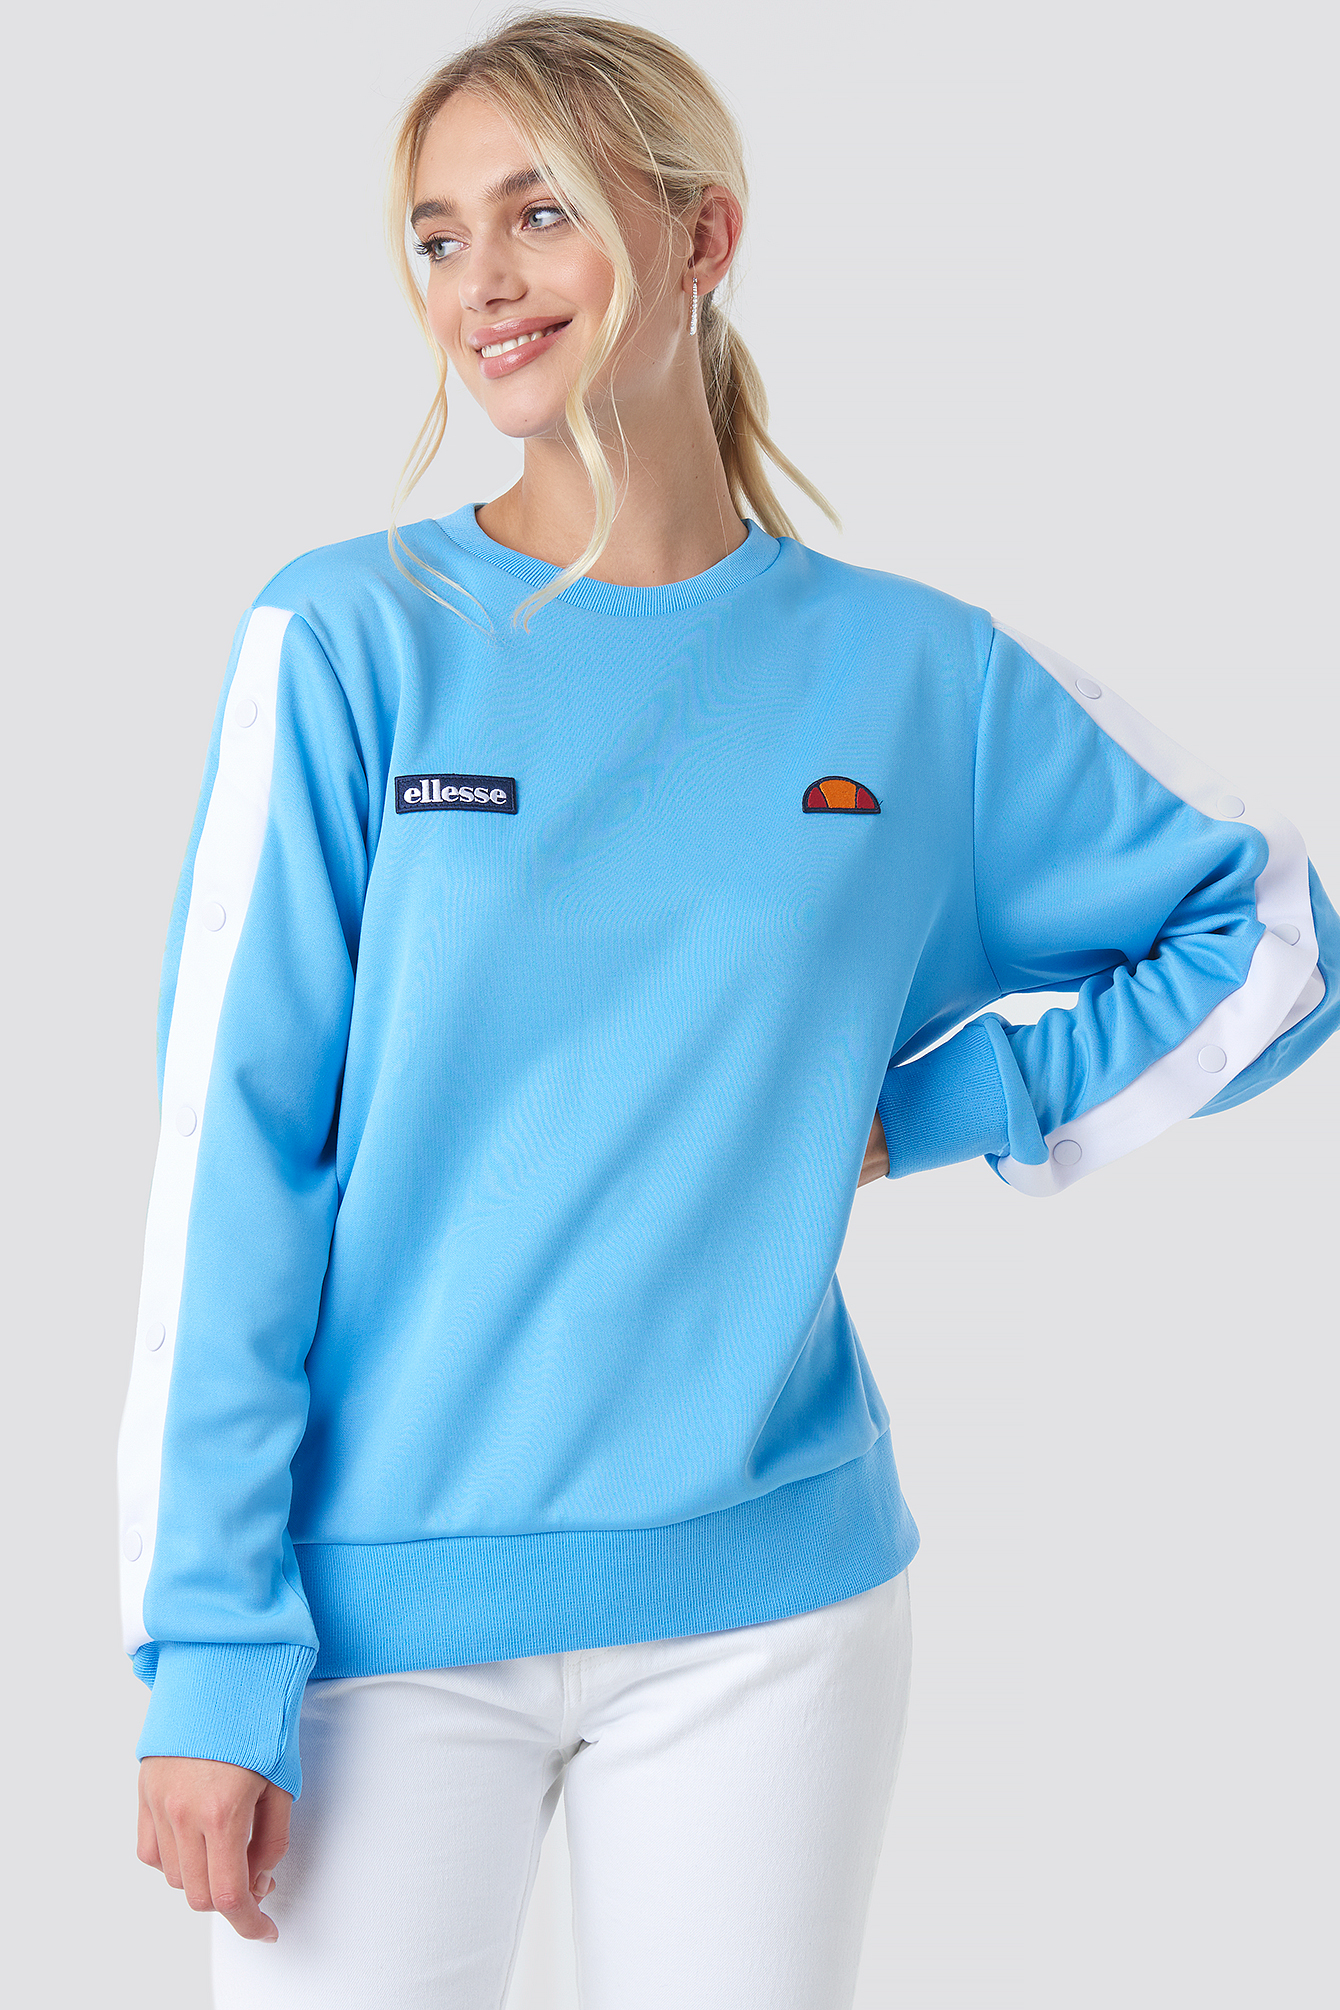 ellesse -  El Abrianna Sweater - Blue